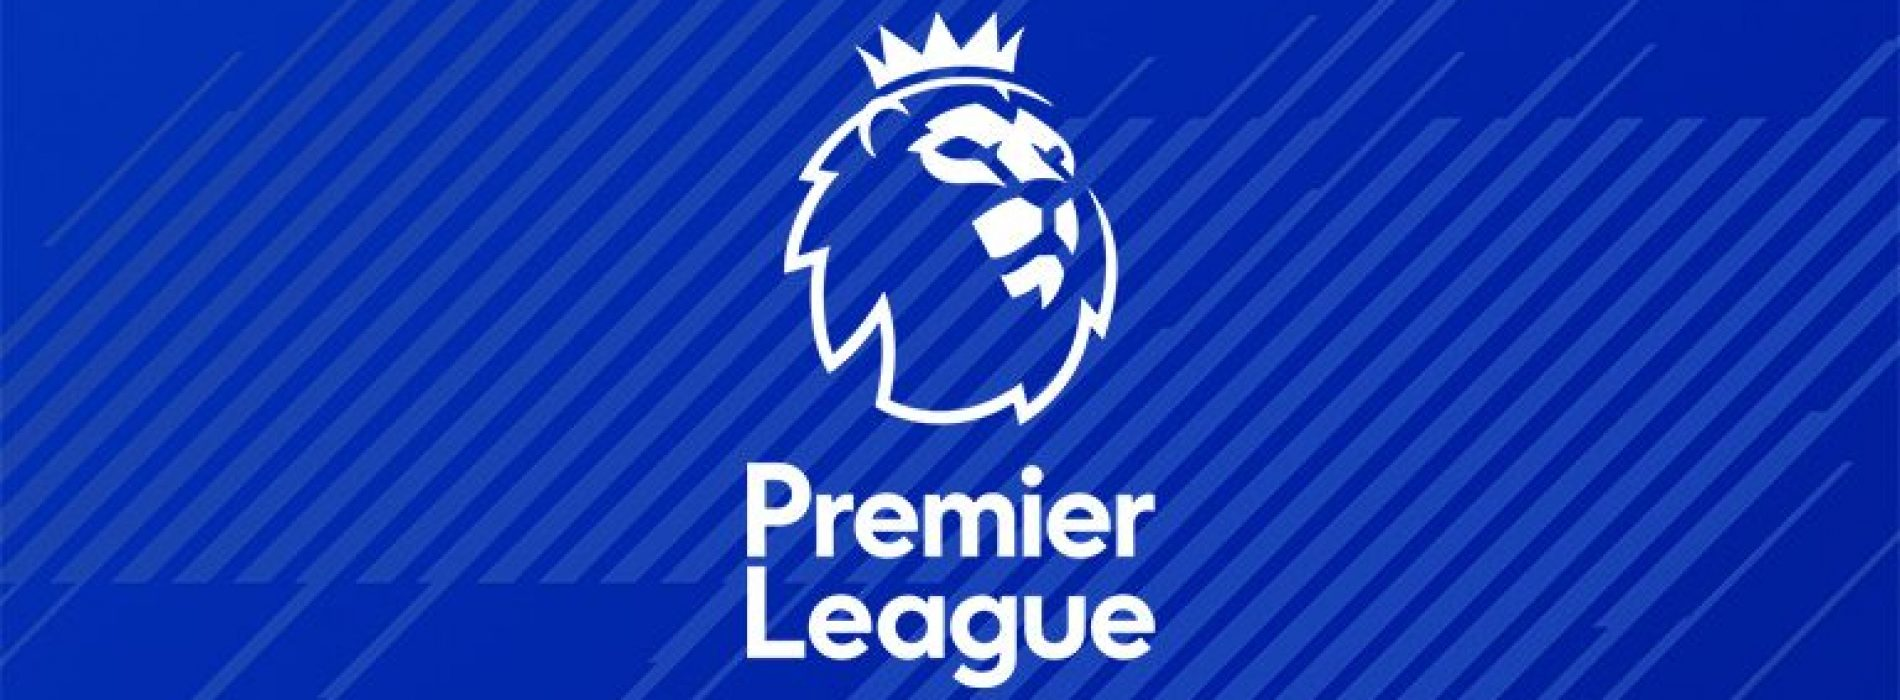 Premier League: Tonfo City contro i Wolves, Liverpool in fuga a +8